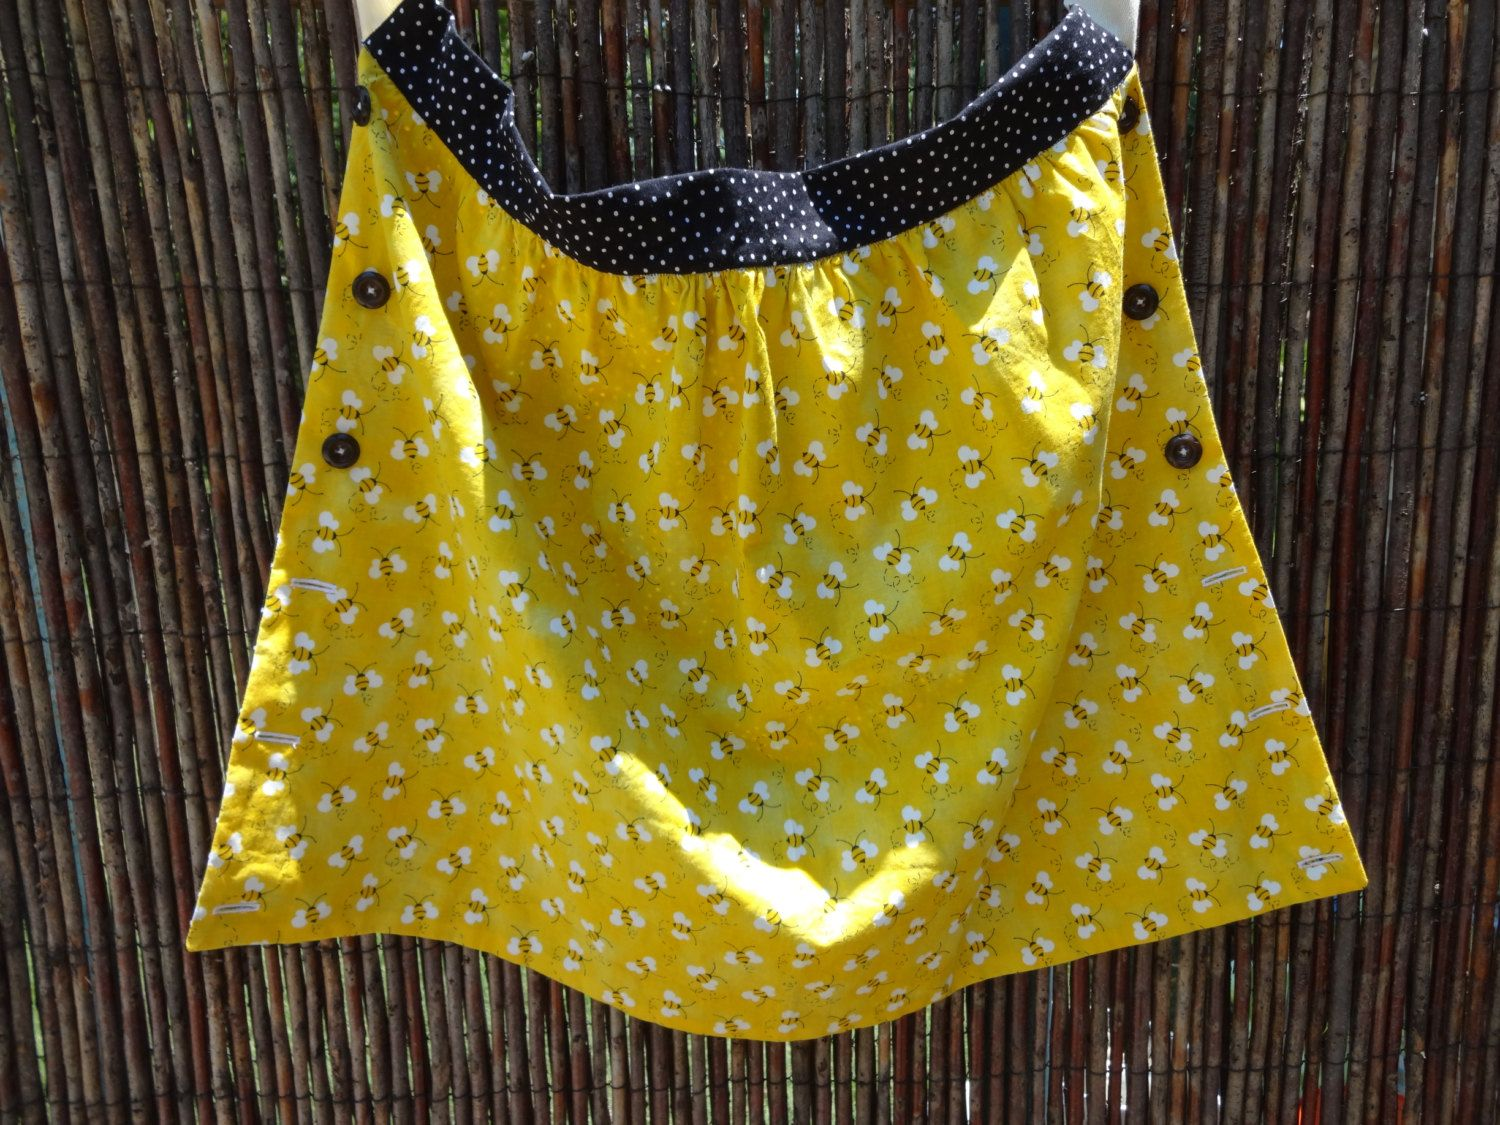 White apron green thumb - Harvest Apron Busy Bees Yellow With Black And White Polka Dots 1 2 Apron Gardener Green Thumb Mothers Day Garden Accessory